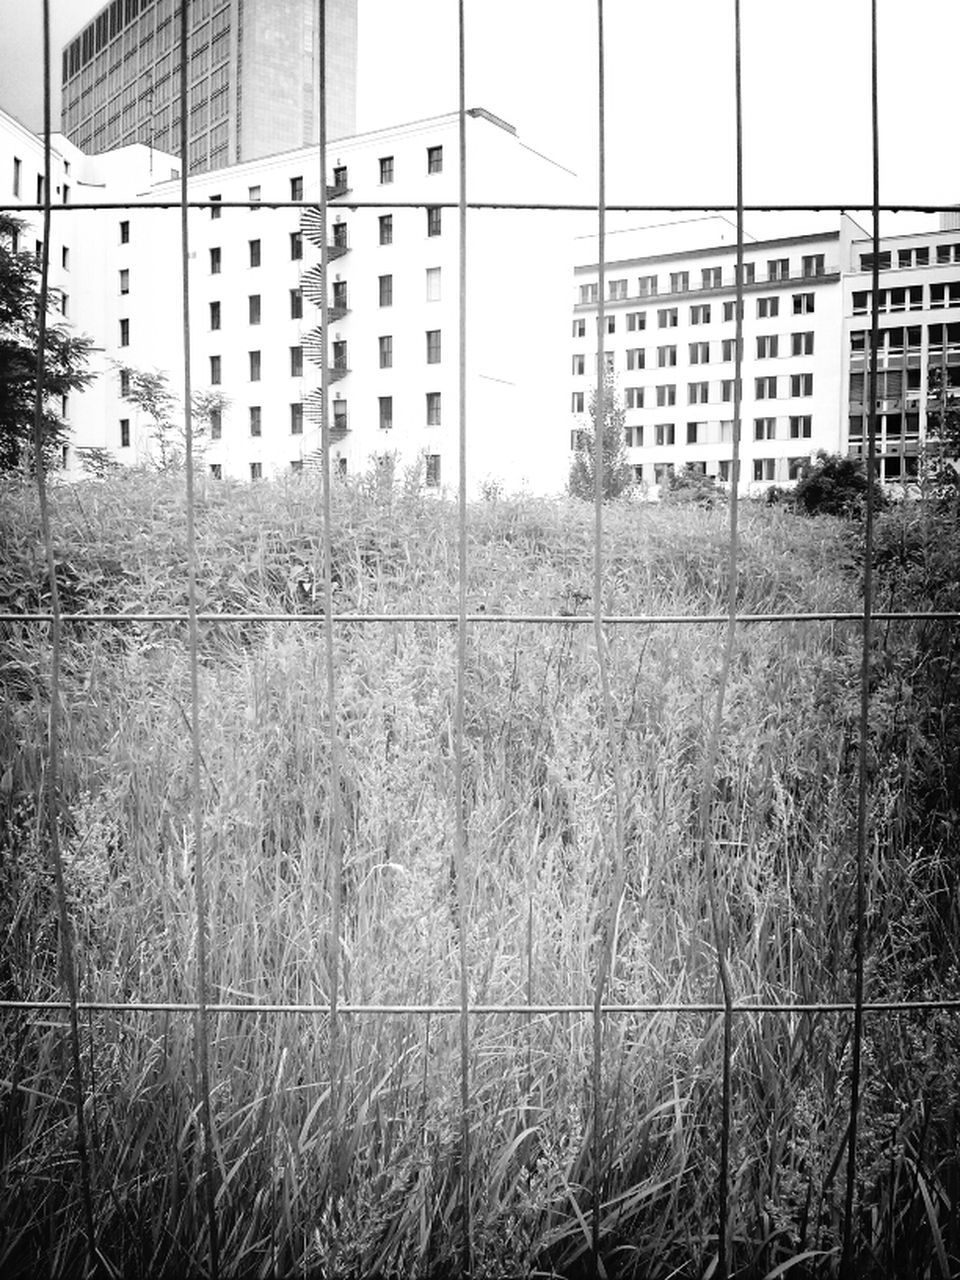 architecture, building exterior, built structure, grass, day, outdoors, city, no people, growth, nature, tree, sky